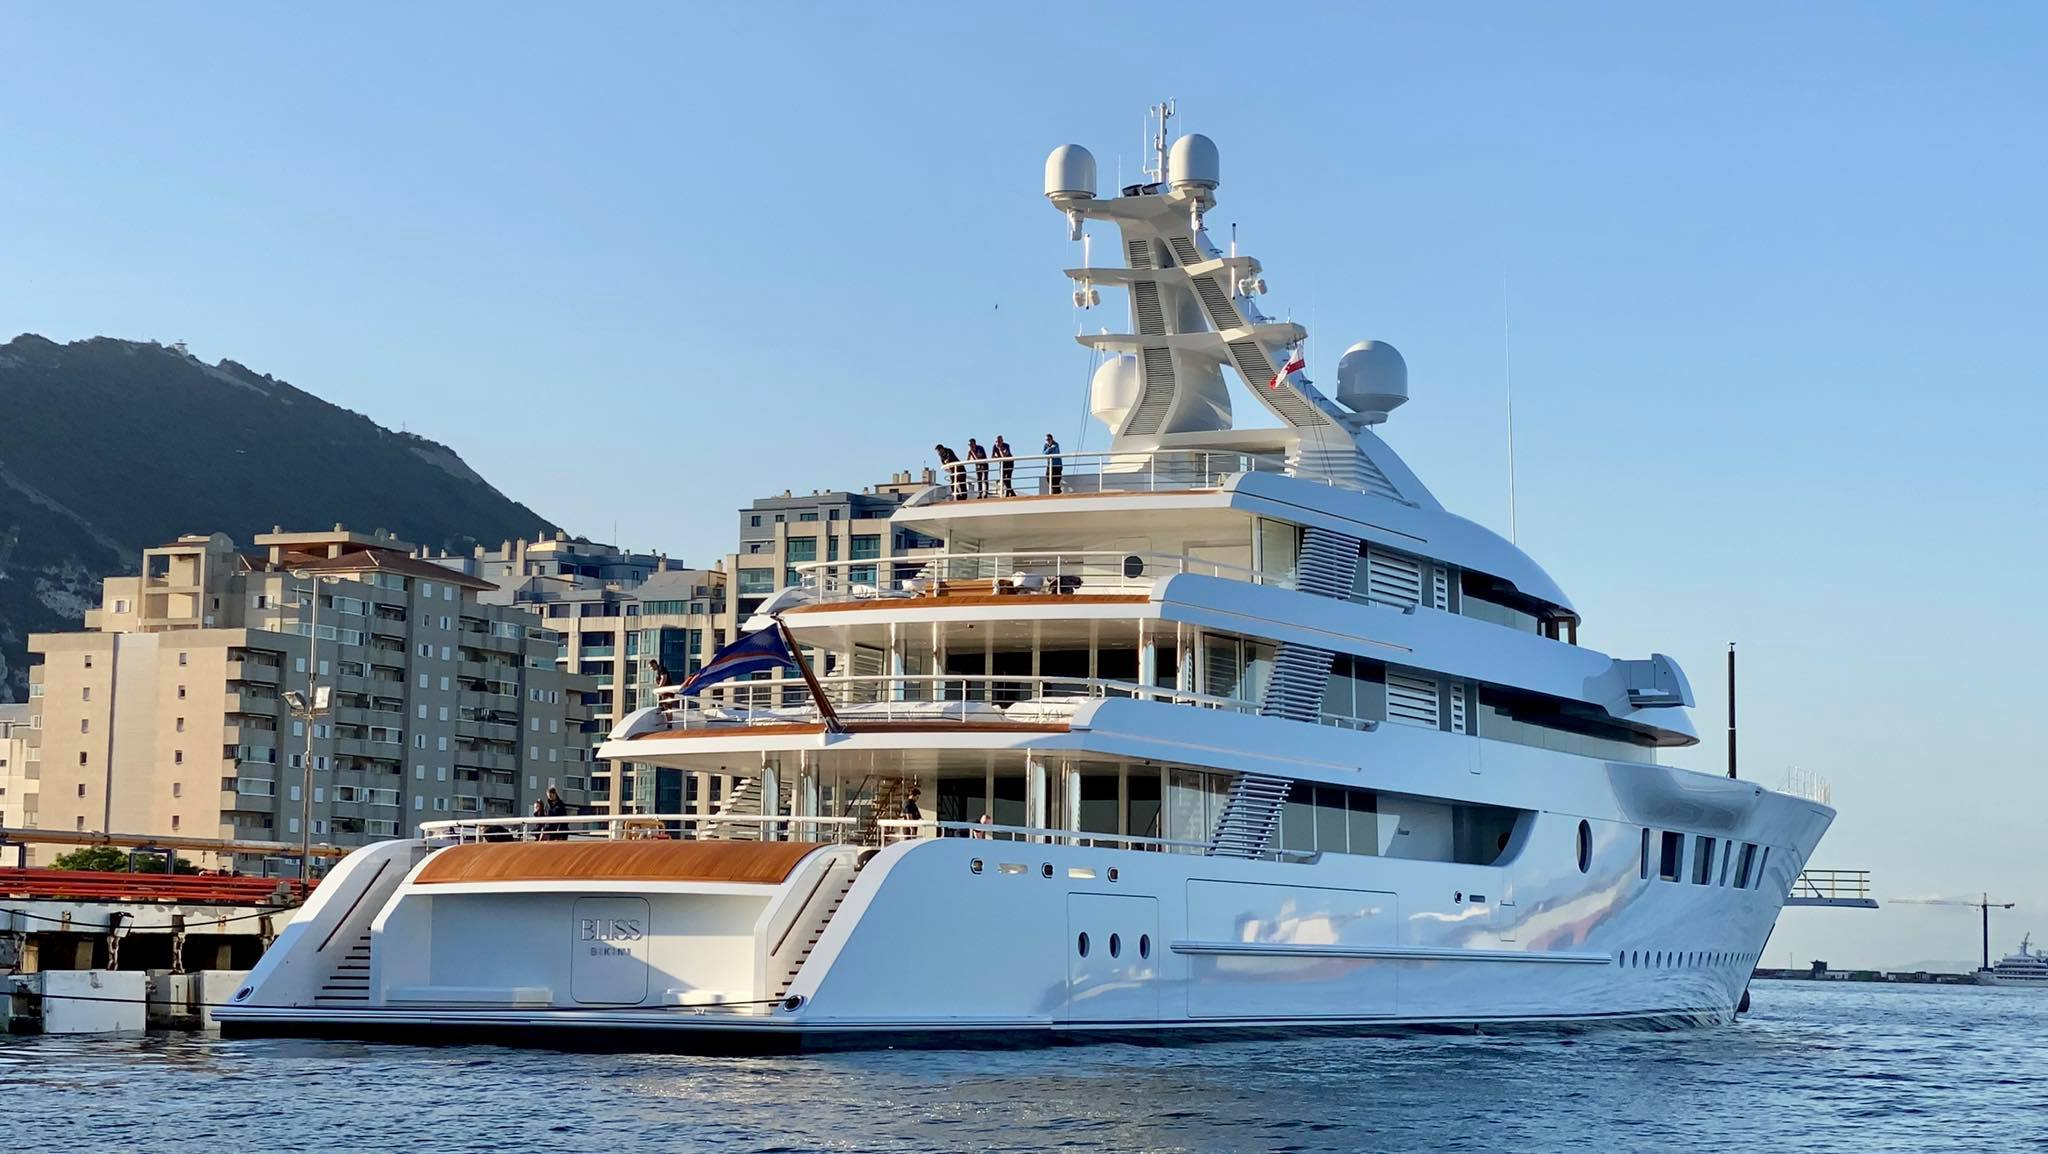 BLISS Yacht - Feadship - 2021 - US owner